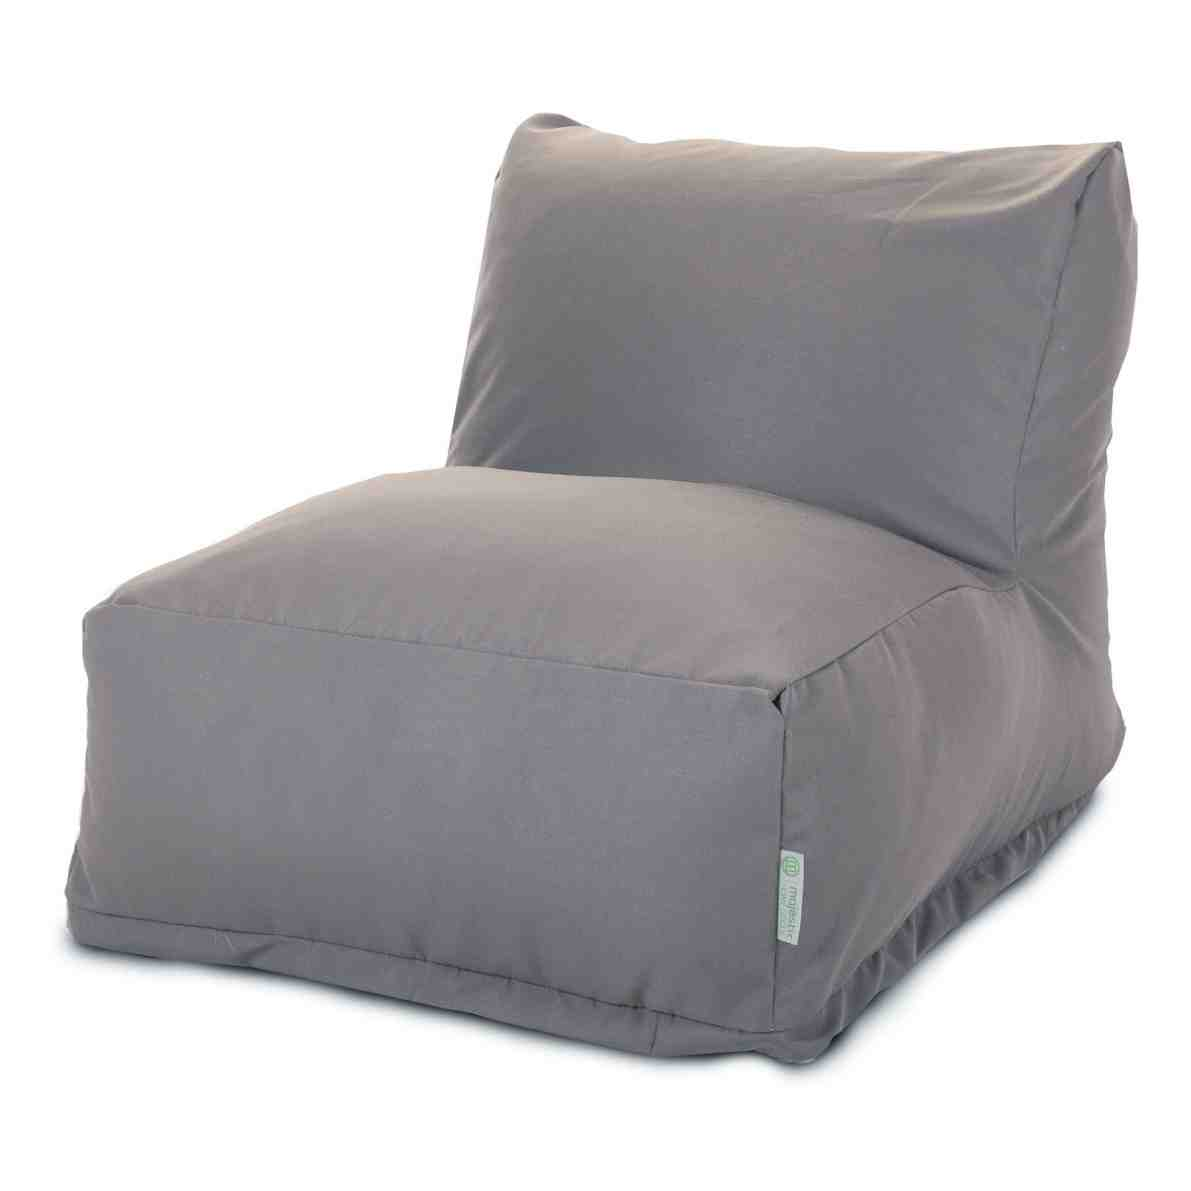 office chair cushion steel covers bean bag loungers majestic home goods